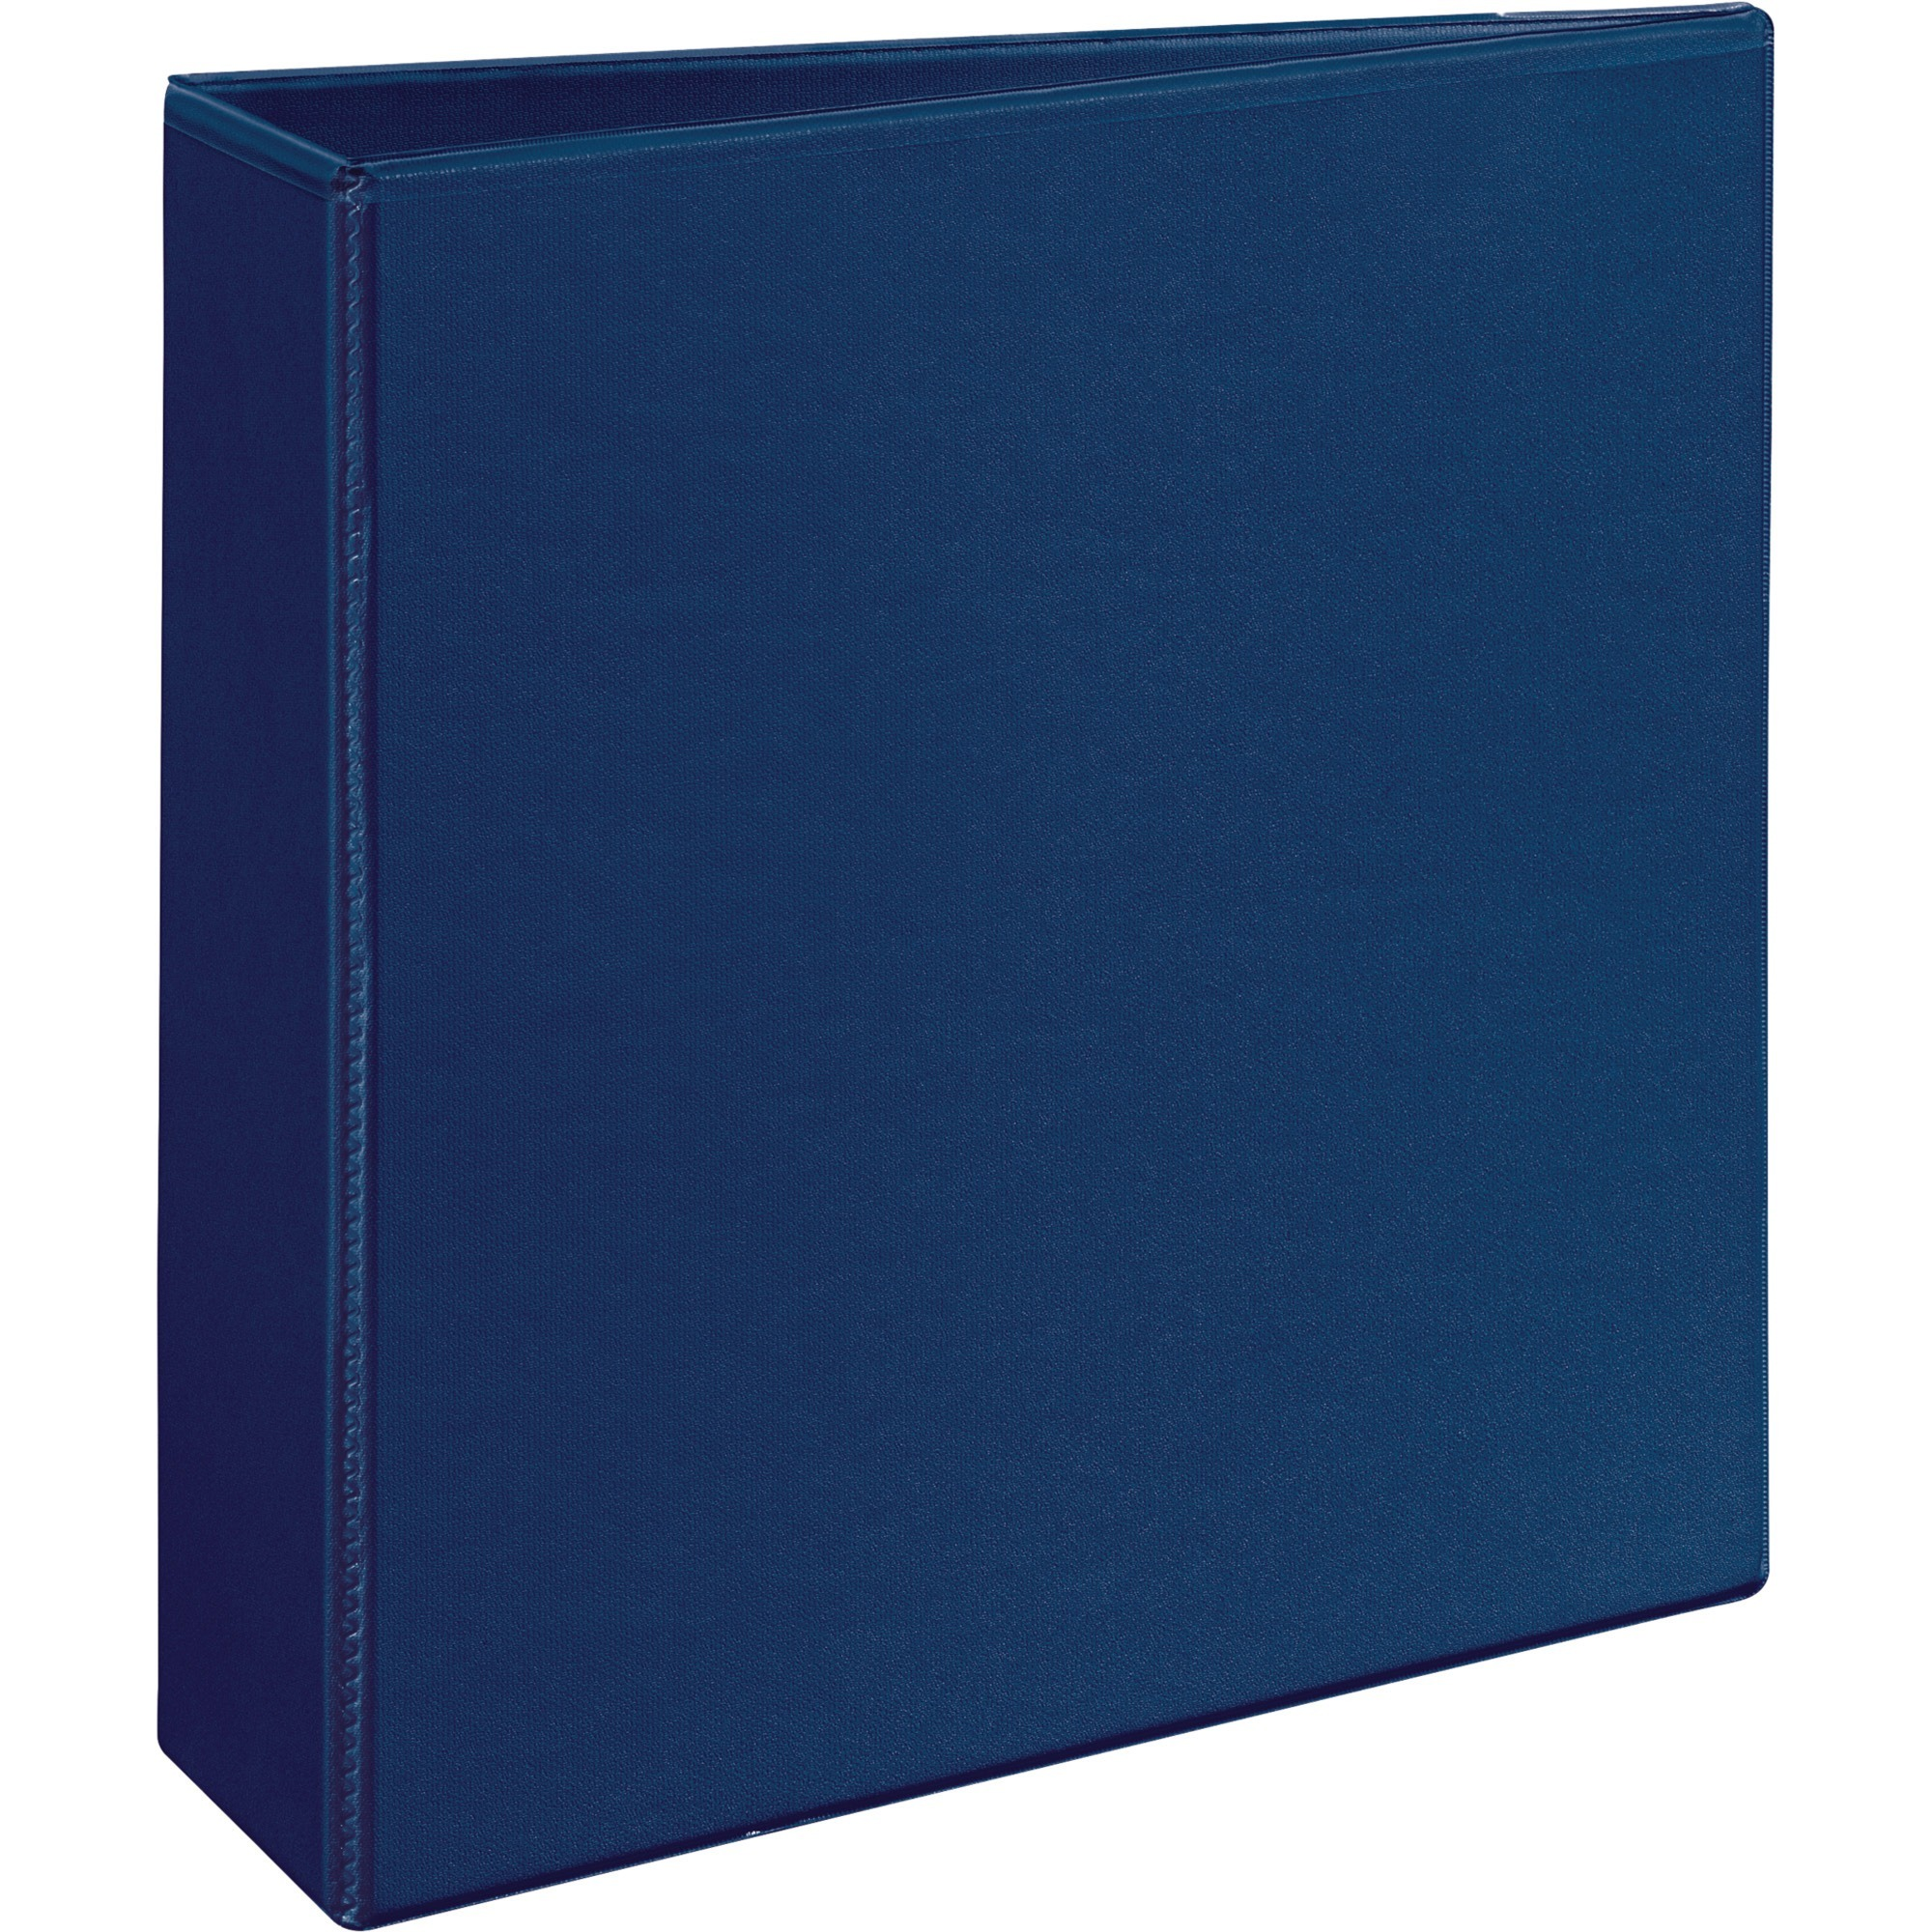 ocean stationery and office supplies office supplies binders